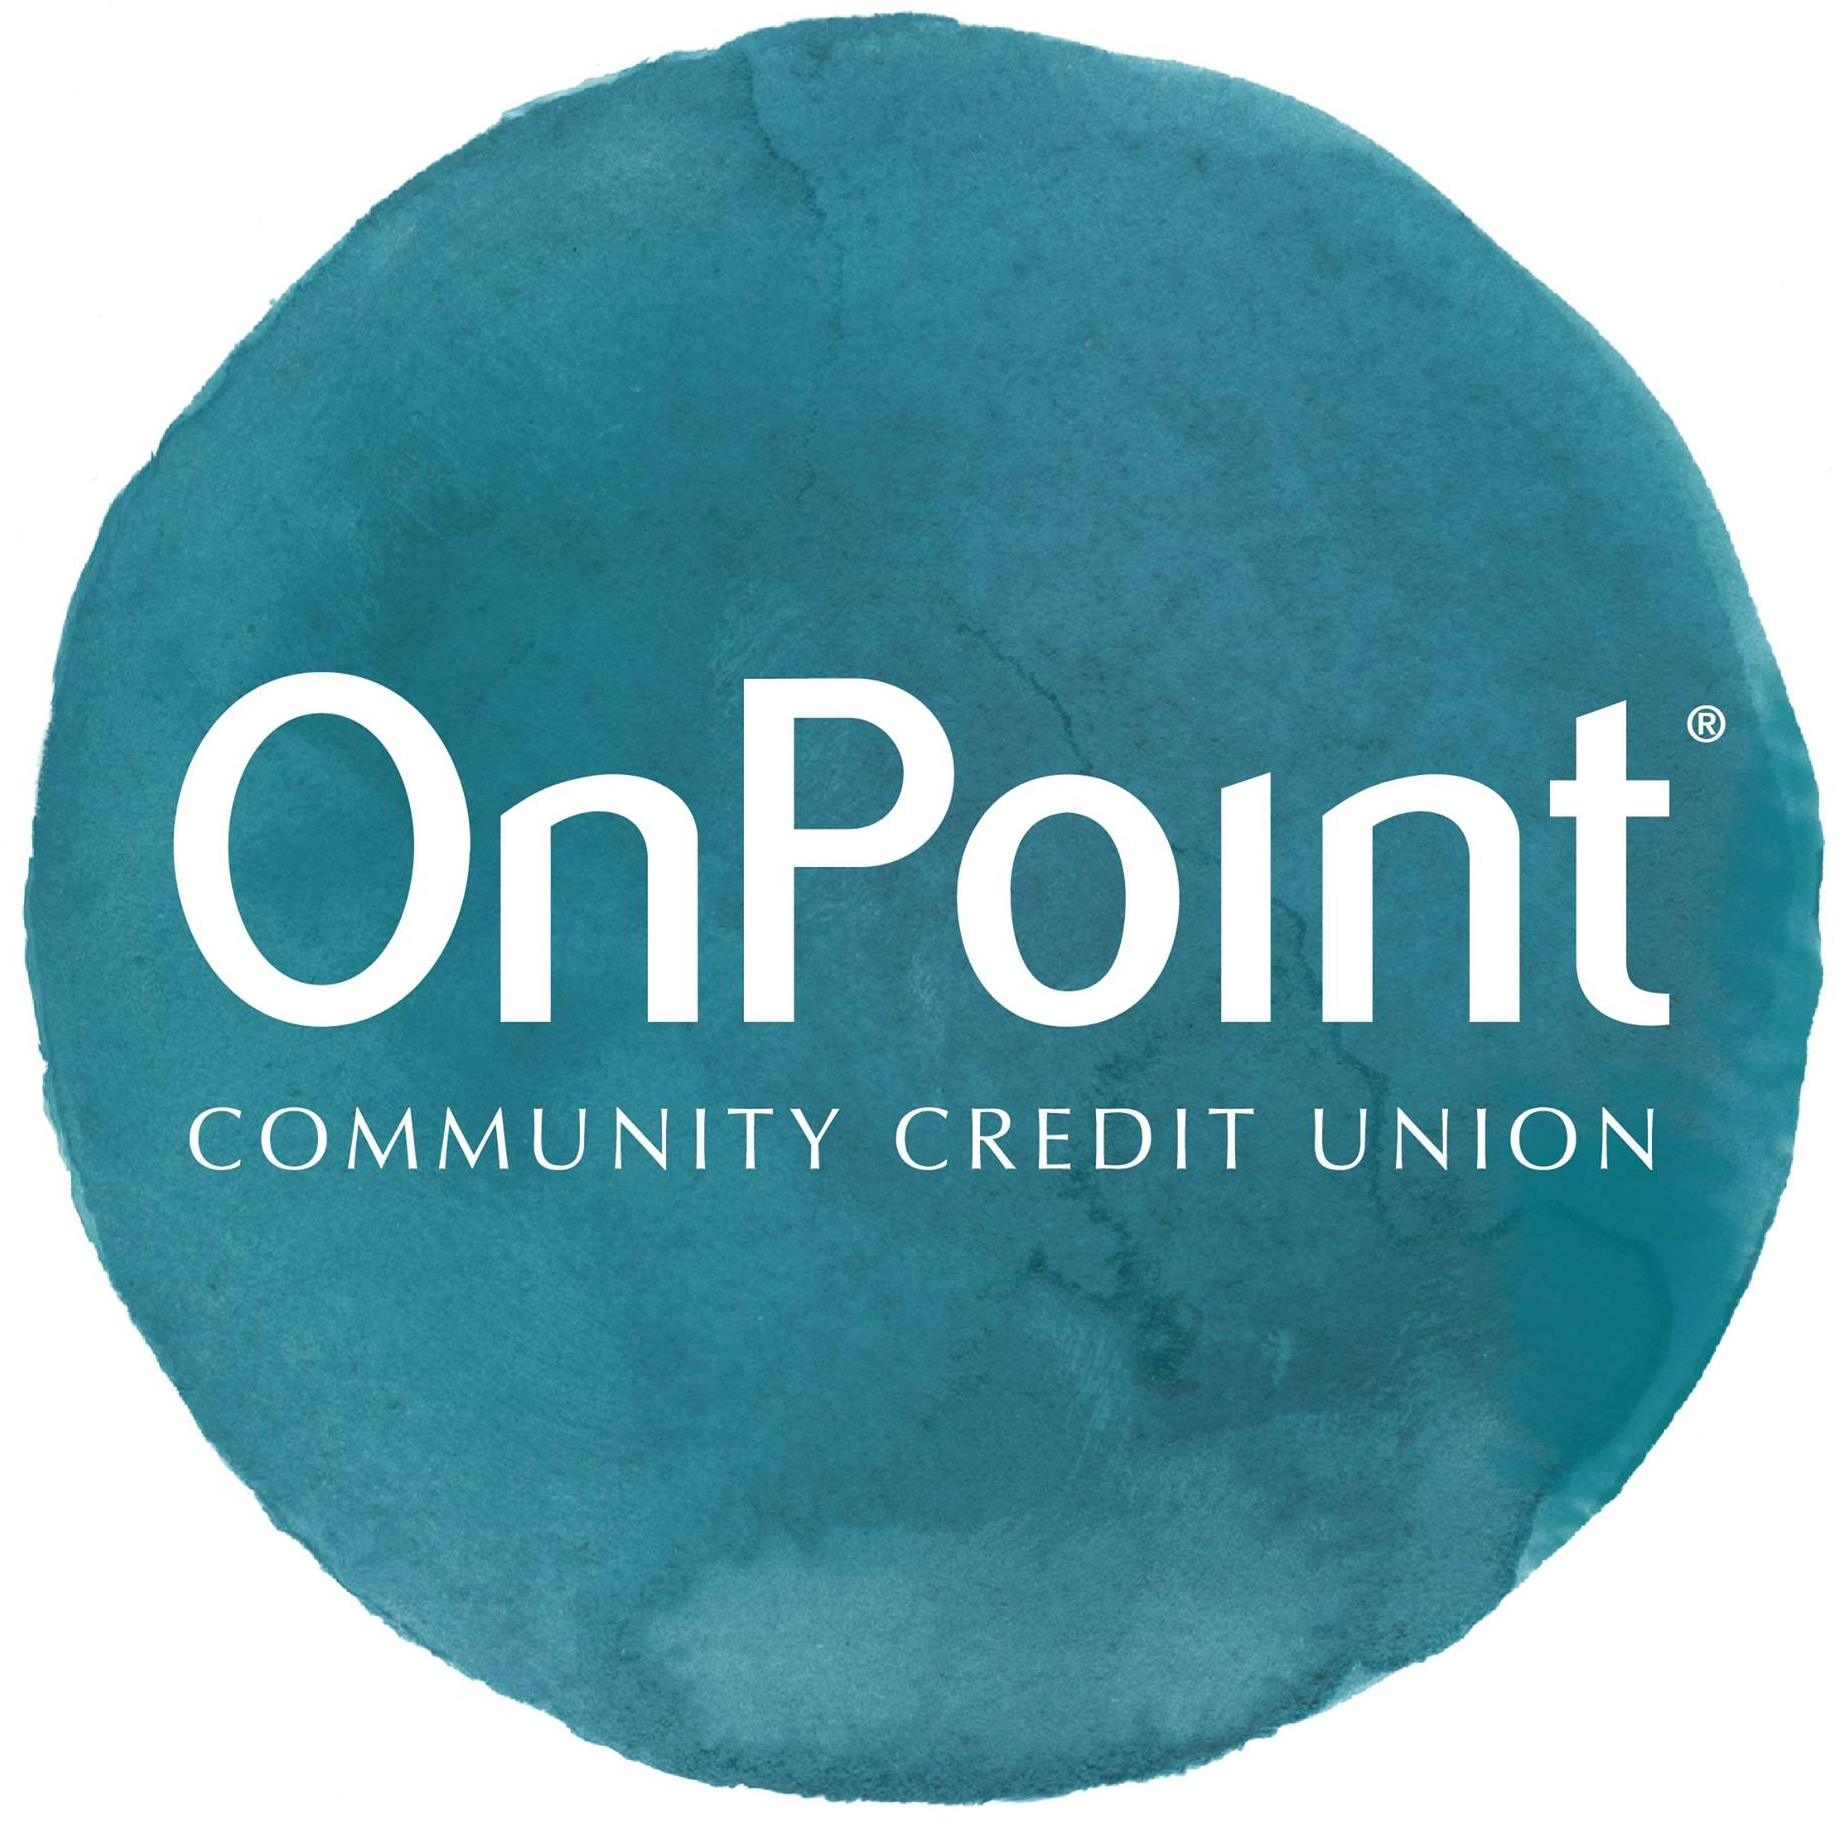 Event Sponsor, OnPoint Community Credit Union